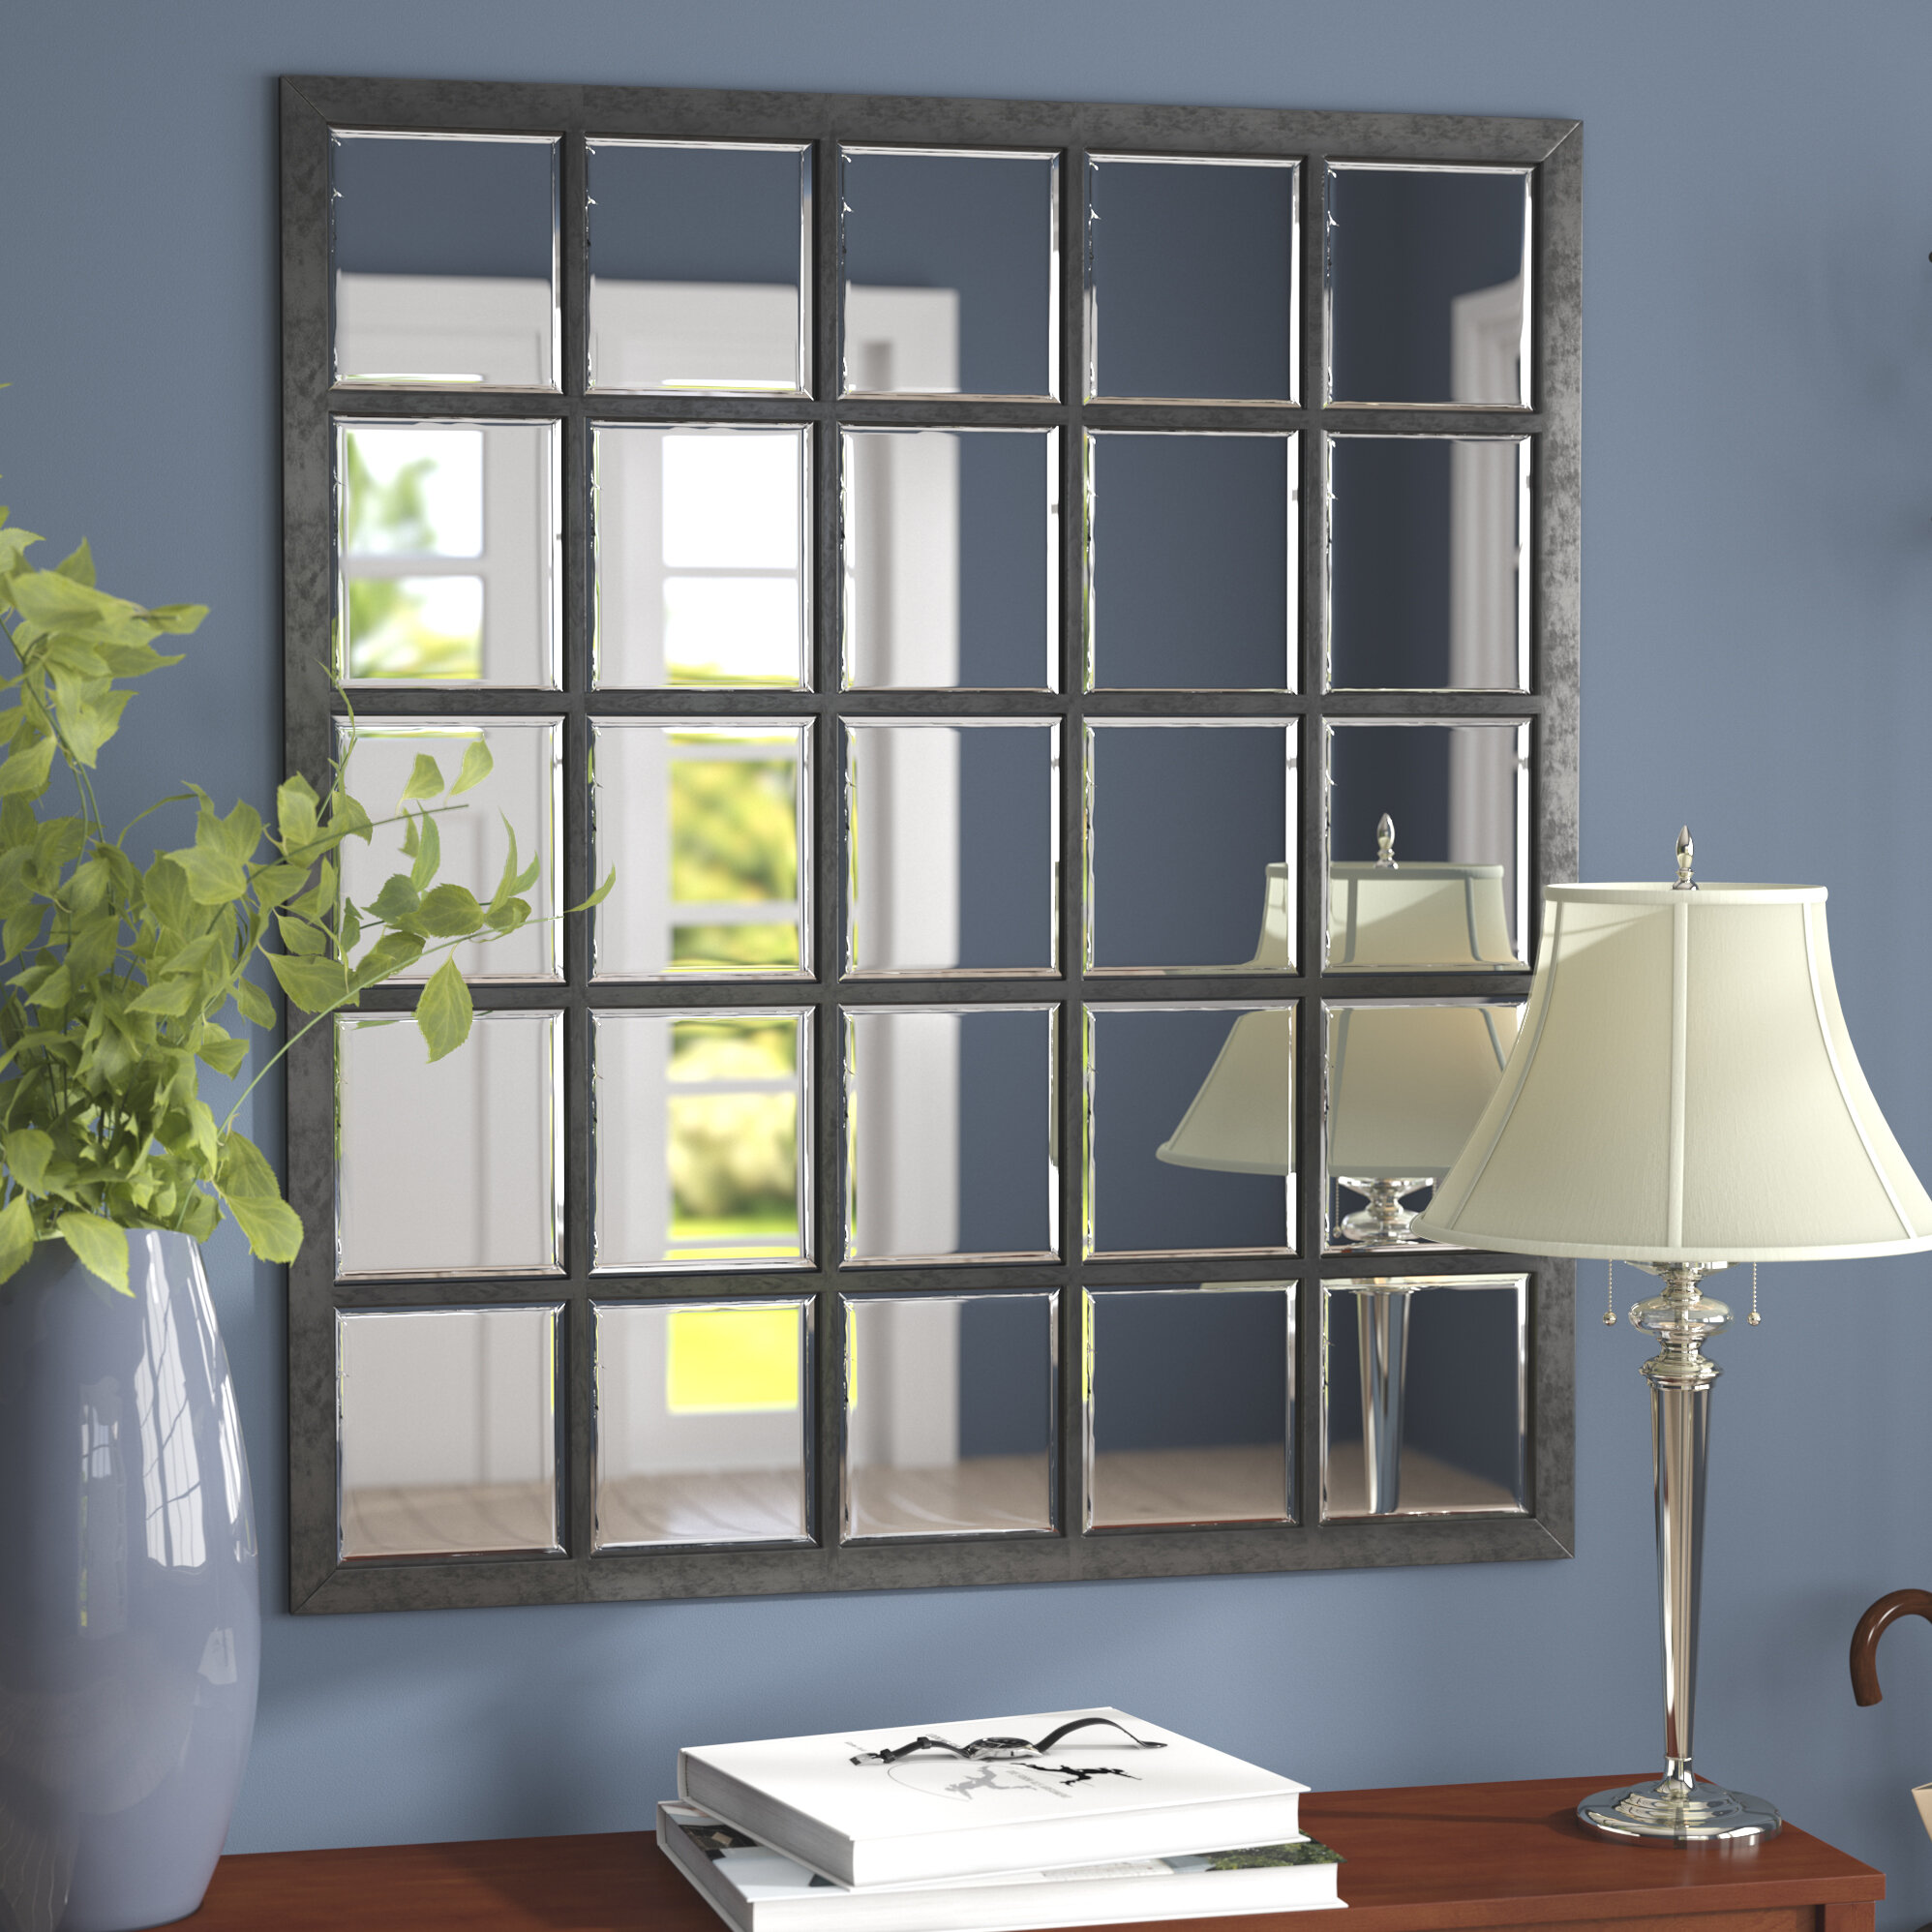 Darby Home Co Accent Window Mirror & Reviews | Wayfair